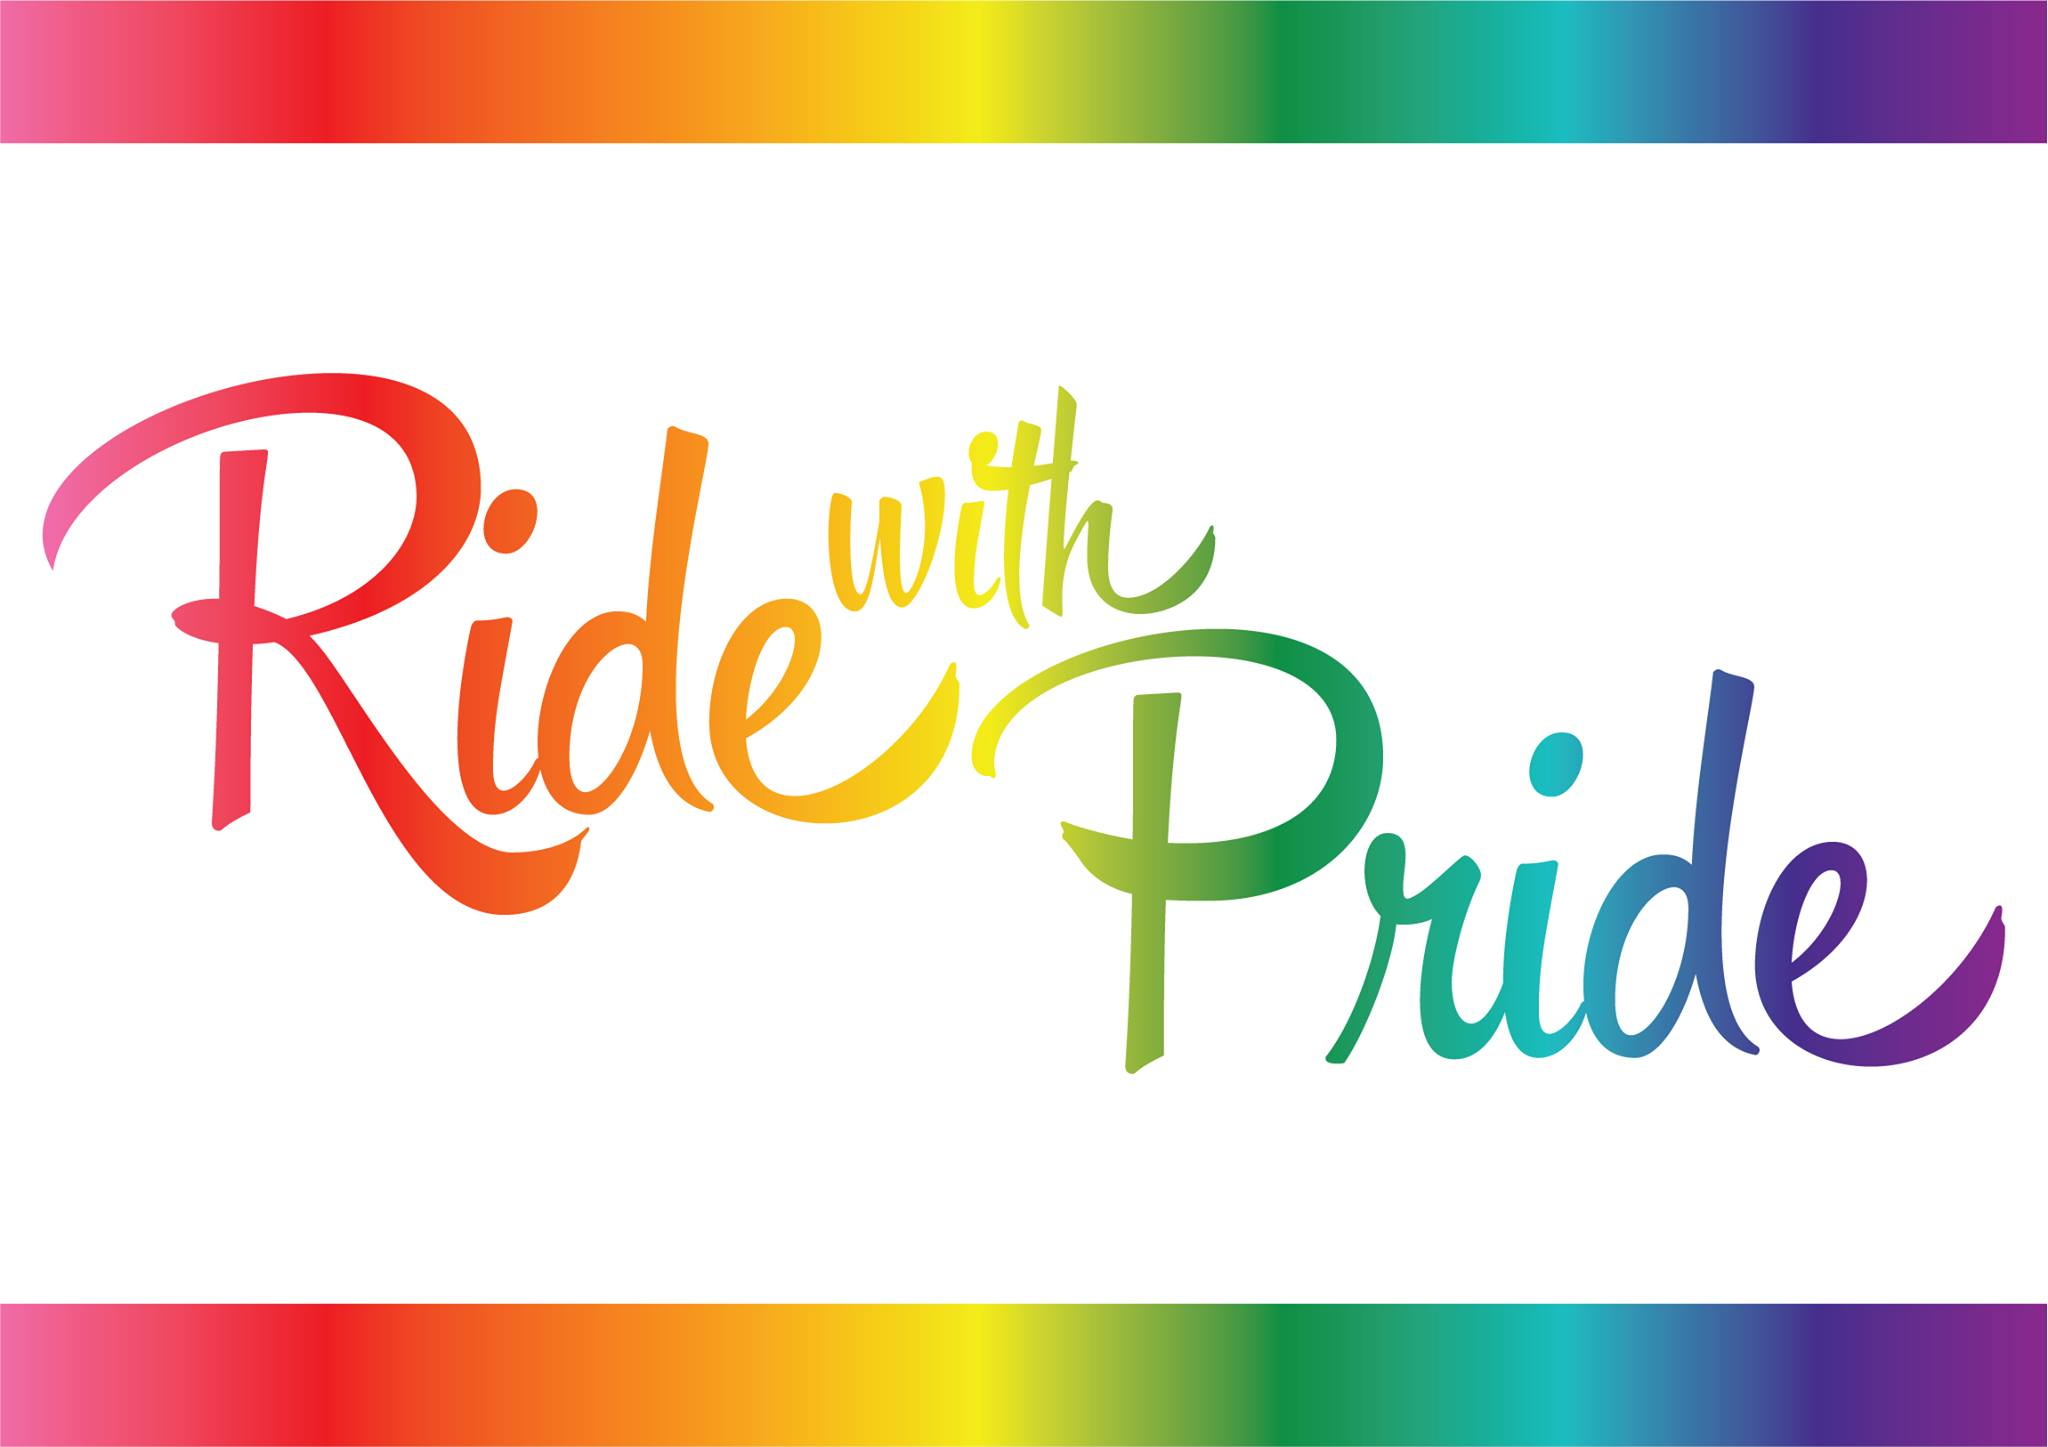 Mt. Hood Meadows: Ride with Pride Day